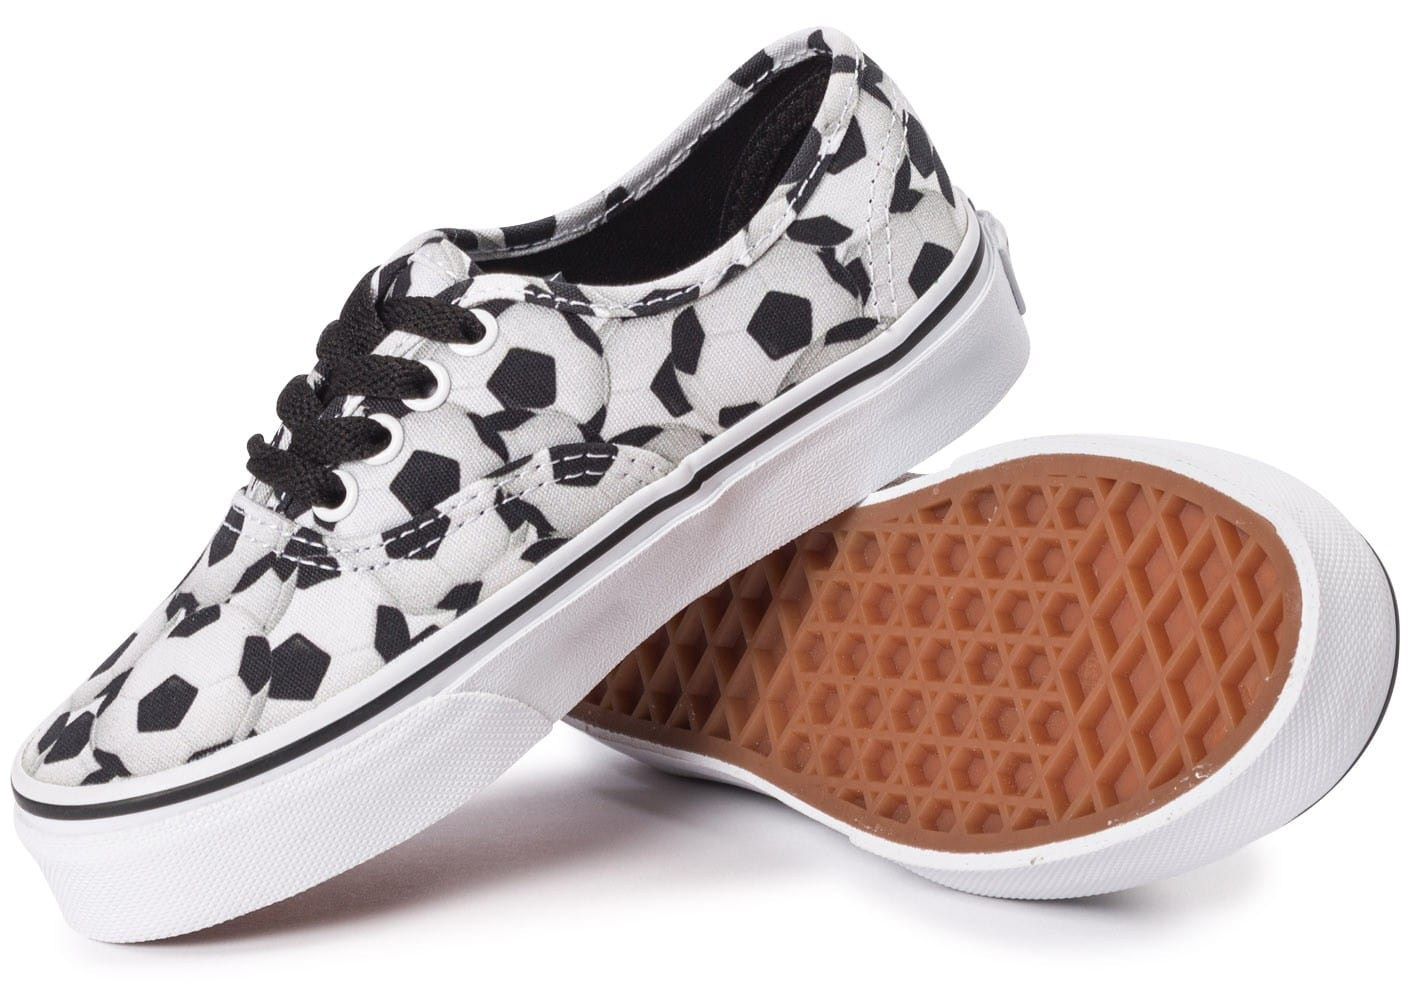 vans authentic enfant soccer chaussures enfant chausport. Black Bedroom Furniture Sets. Home Design Ideas